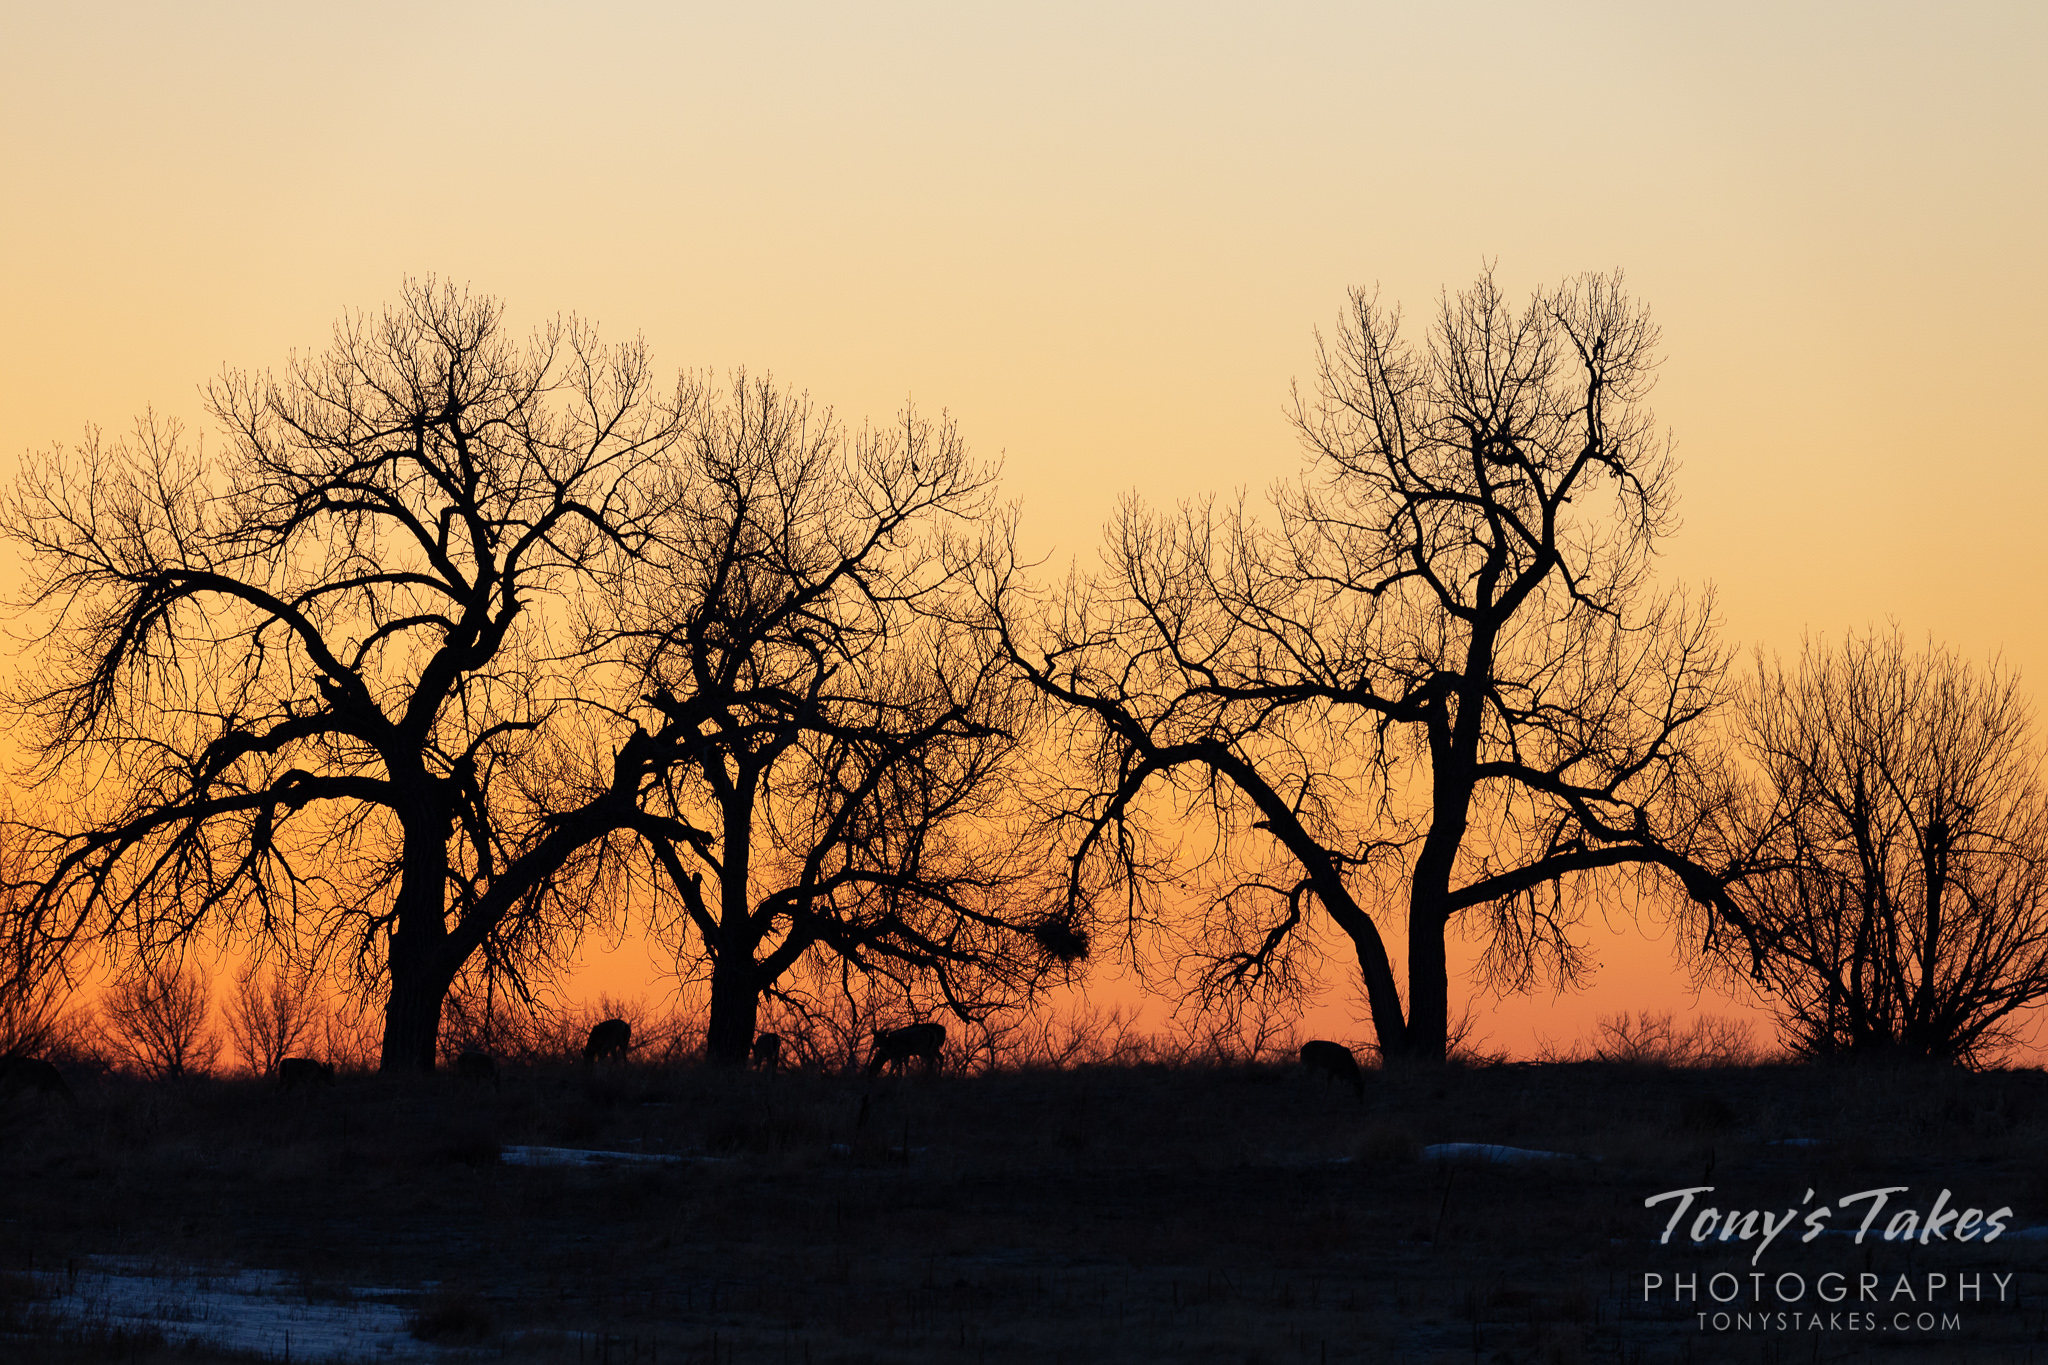 The orange glow of sunrise silhouettes trees and deer. (© Tony's Takes)